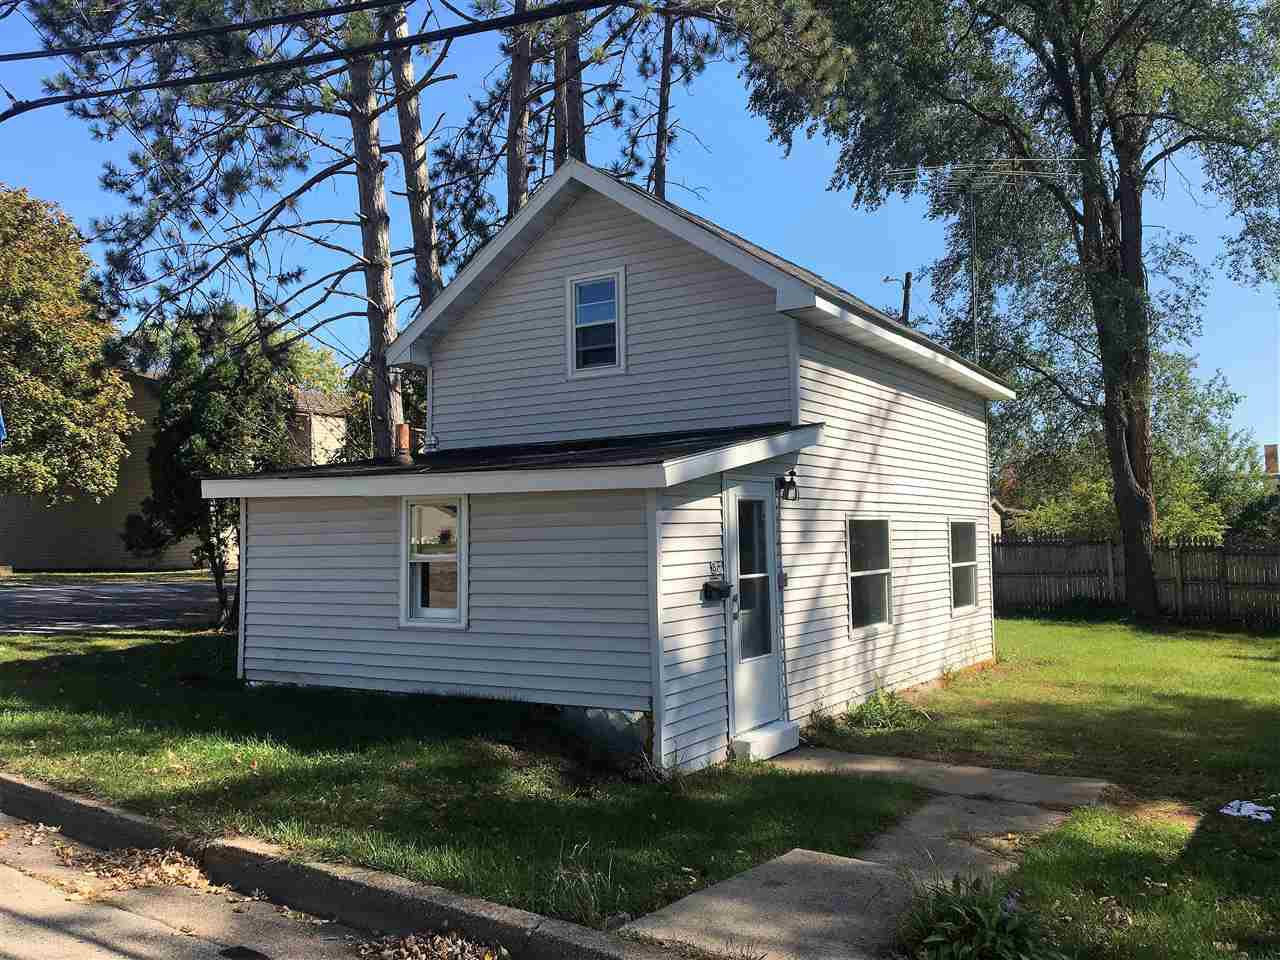 Newly renovated 1 bed 1 bath home in the heart of Clintonville.  The home is located on a corner and has a large fenced in backyard along with a 1.5 car detached garage. Stop renting and come take a look at this move-in ready home.